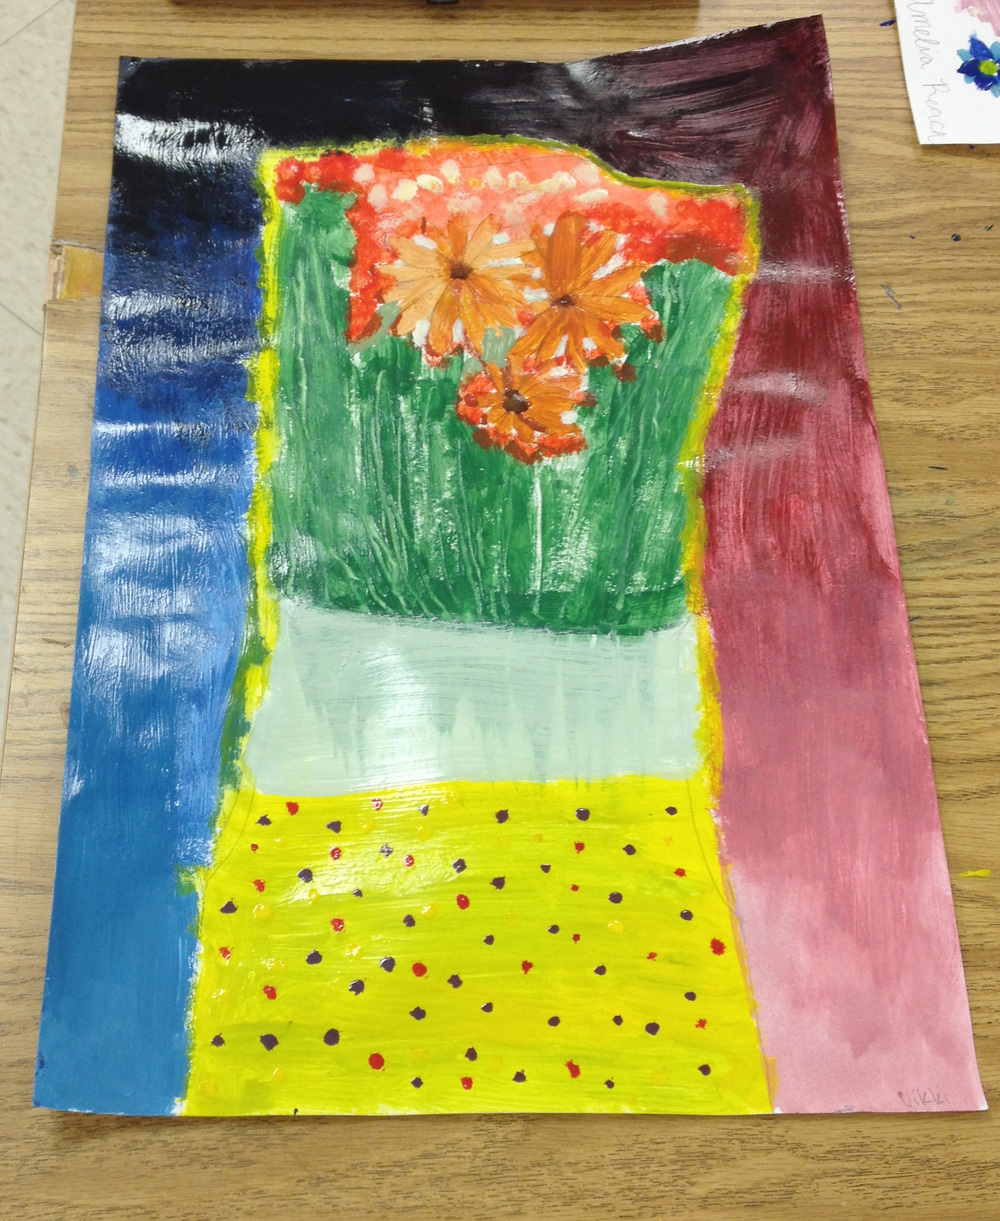 This student was really creative with her background. I was really impressed with that rainbow roll (a printmaking term). She imagined her own carrier for her flowers.